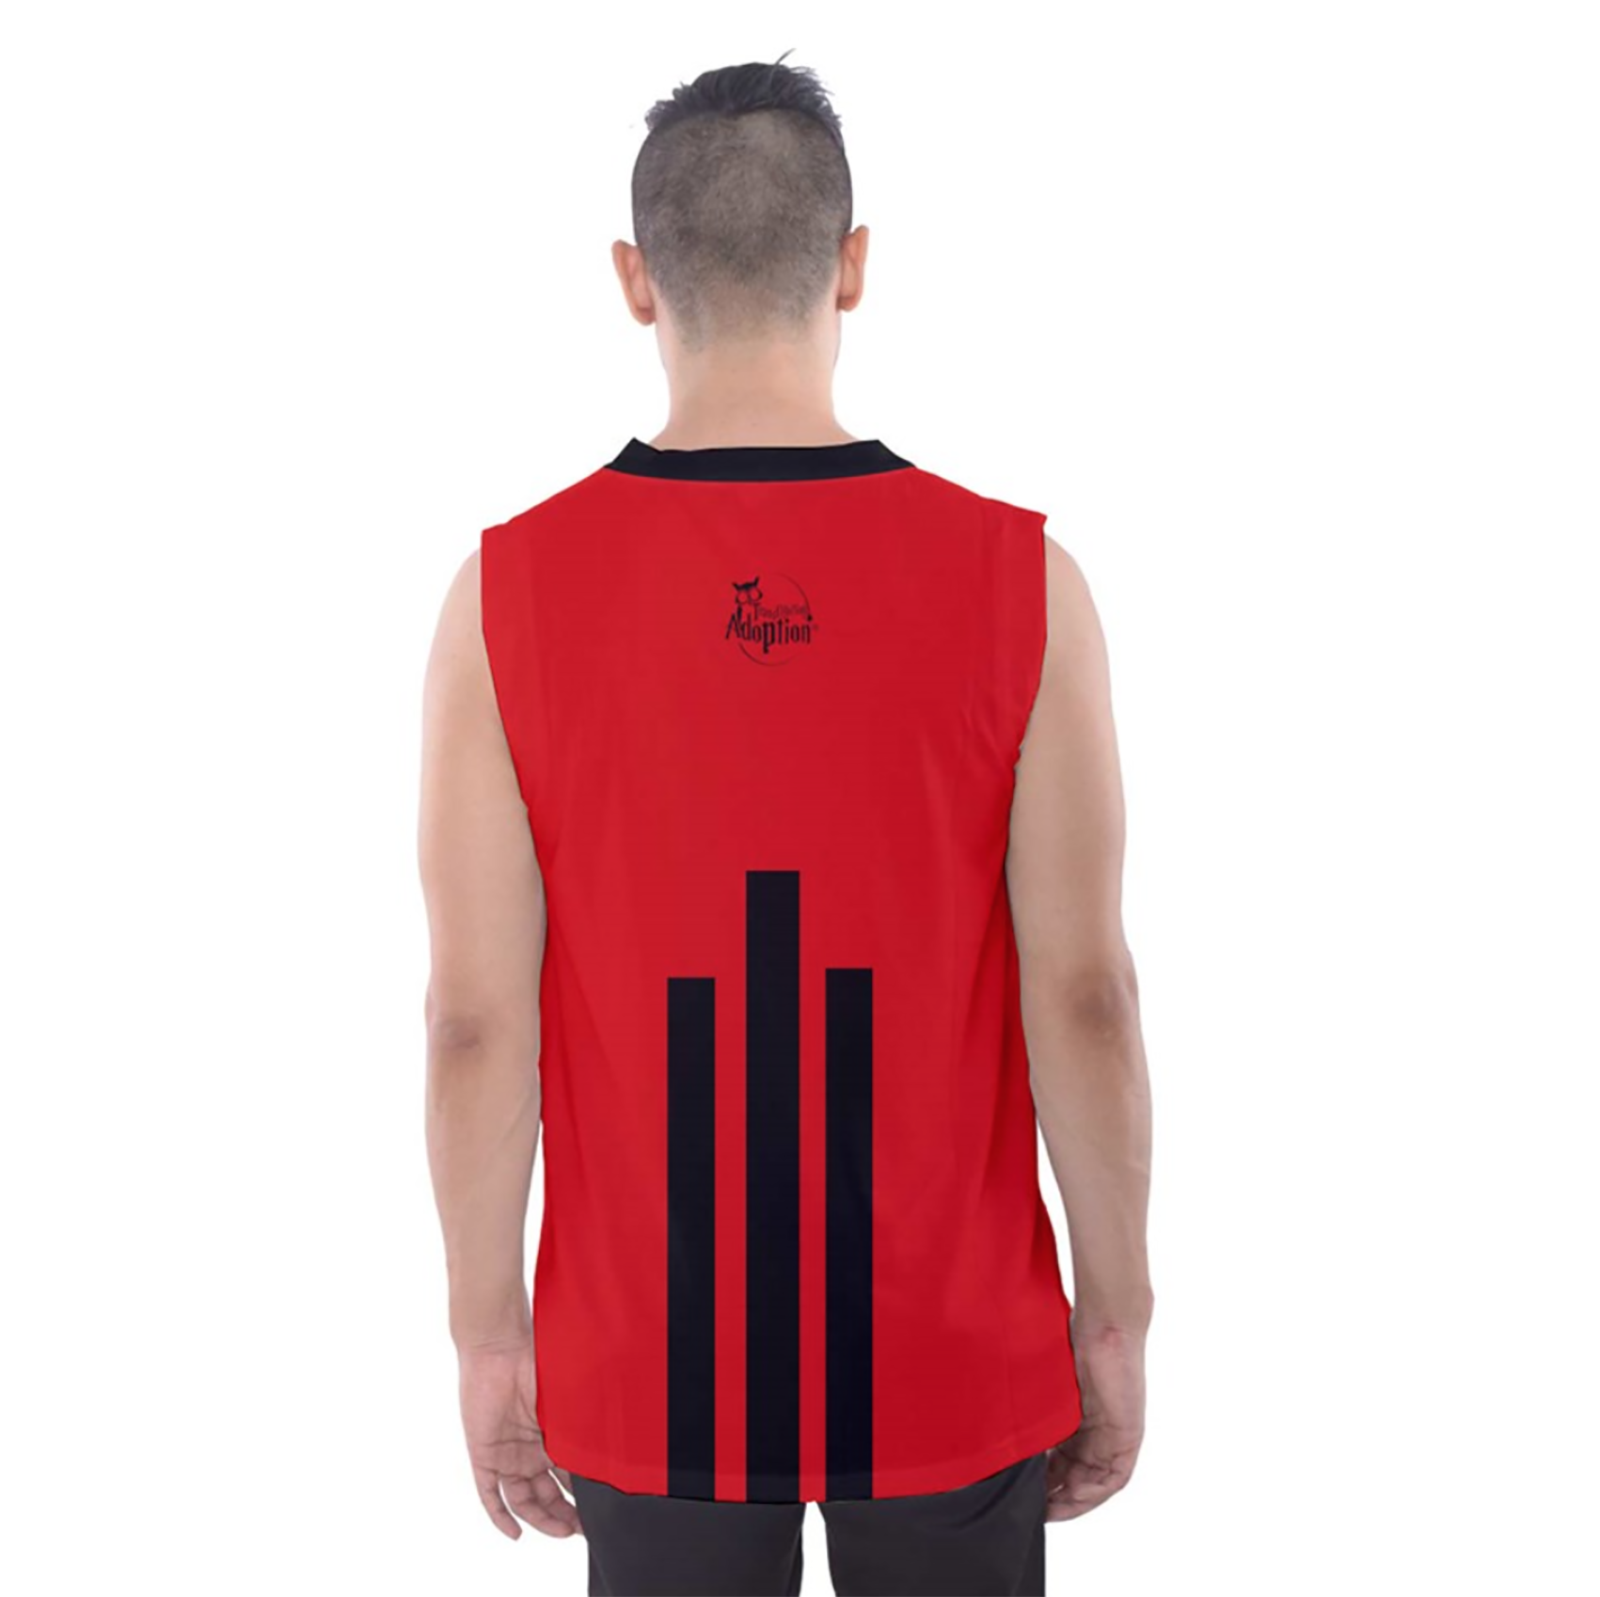 """Magical Sport Men's Tank Top - """"Adoptive Parents Who SEEK the Best in Kids are KEEPERS"""""""